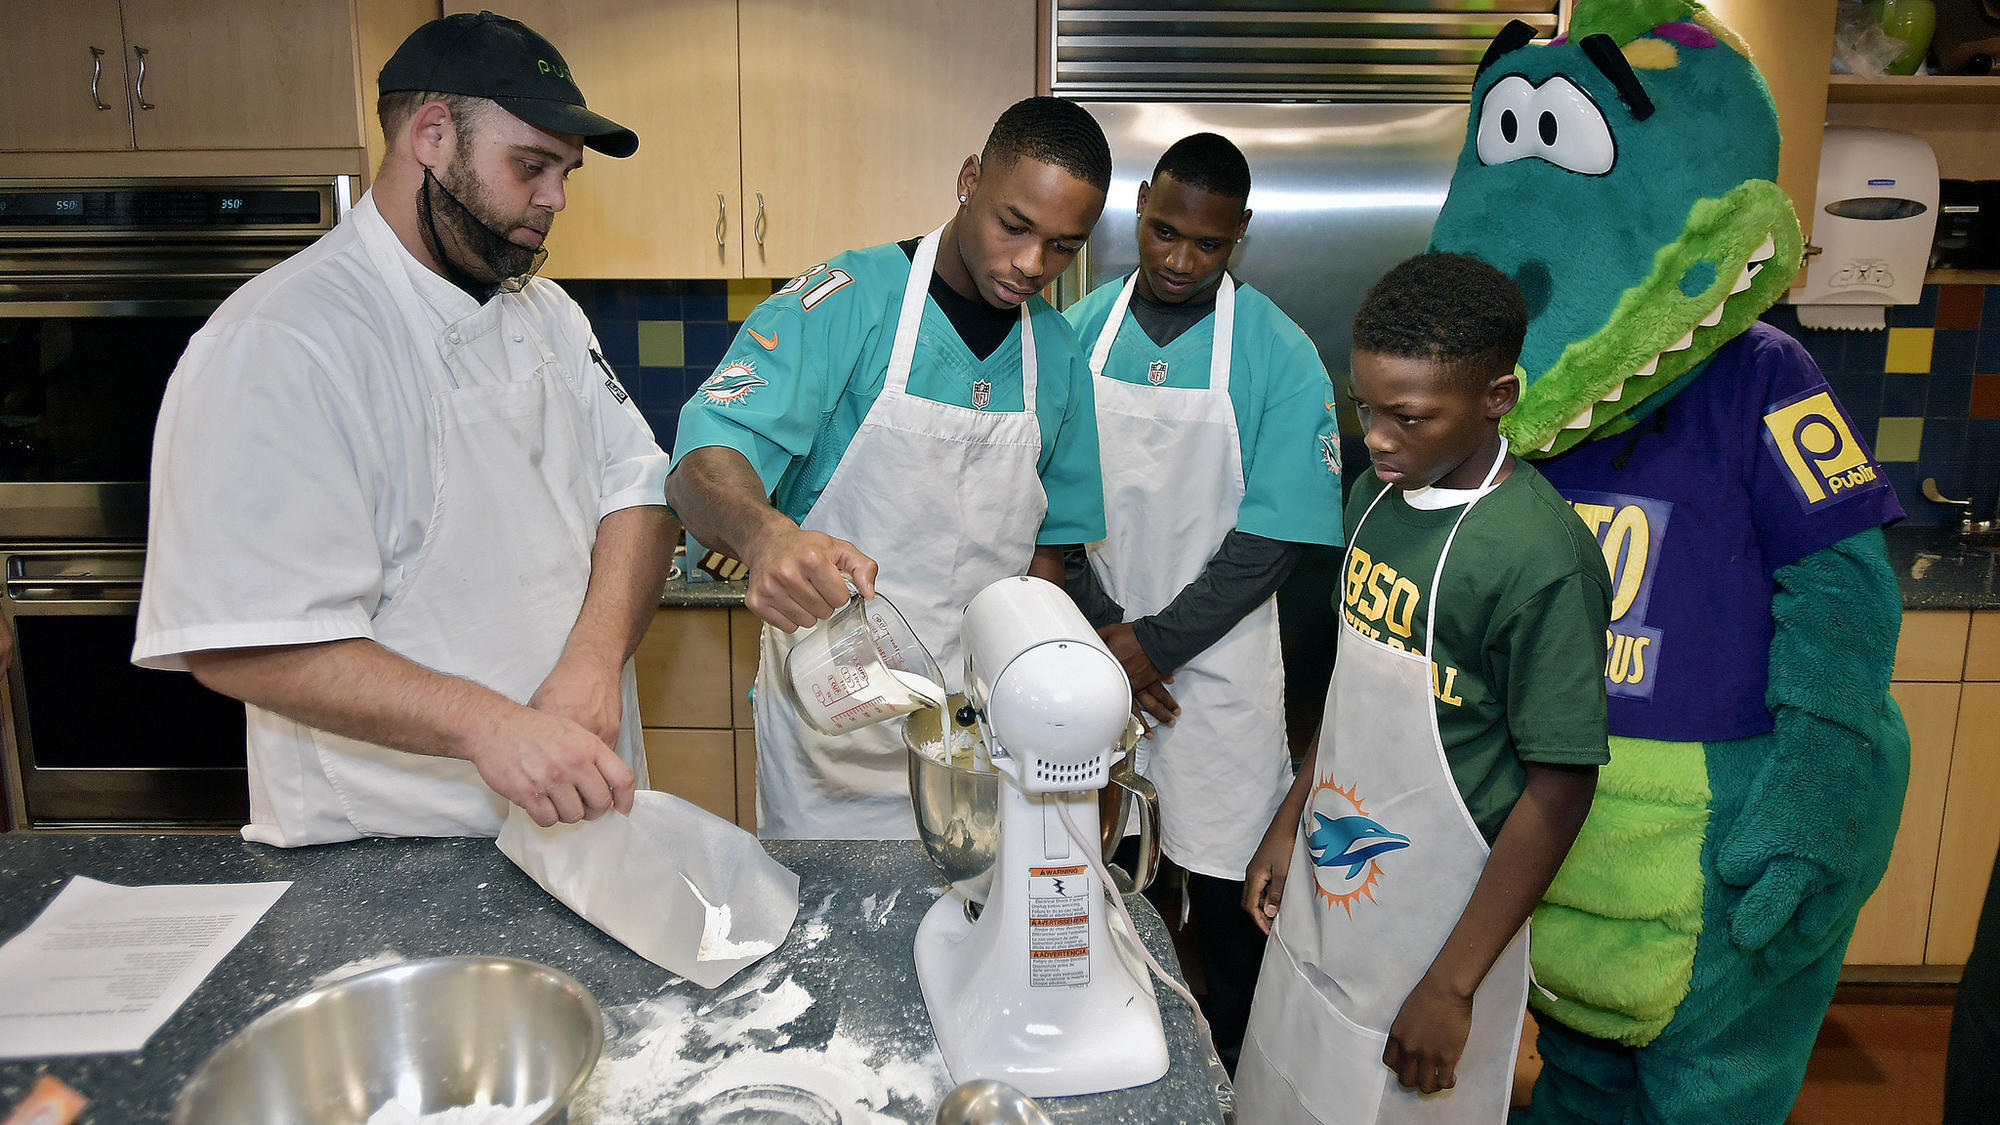 Fl-sp-dolphins-cook-off-20181113